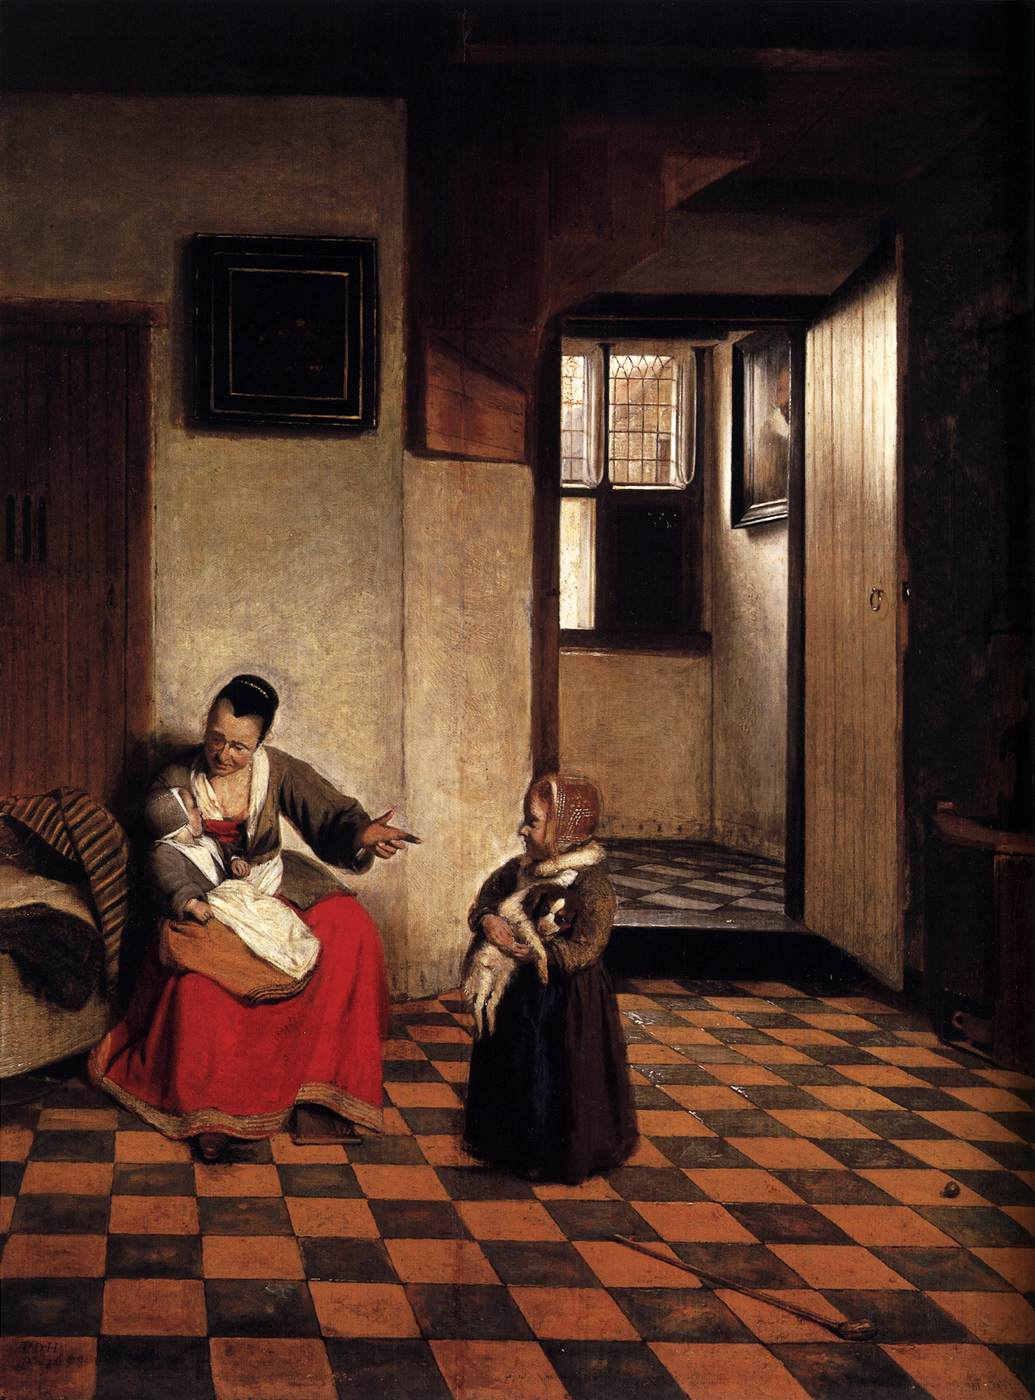 Pieter_de_Hooch_-_A_Woman_with_a_Baby_in_Her_Lap,_and_a_Small_Child_-_WGA11693.jpg